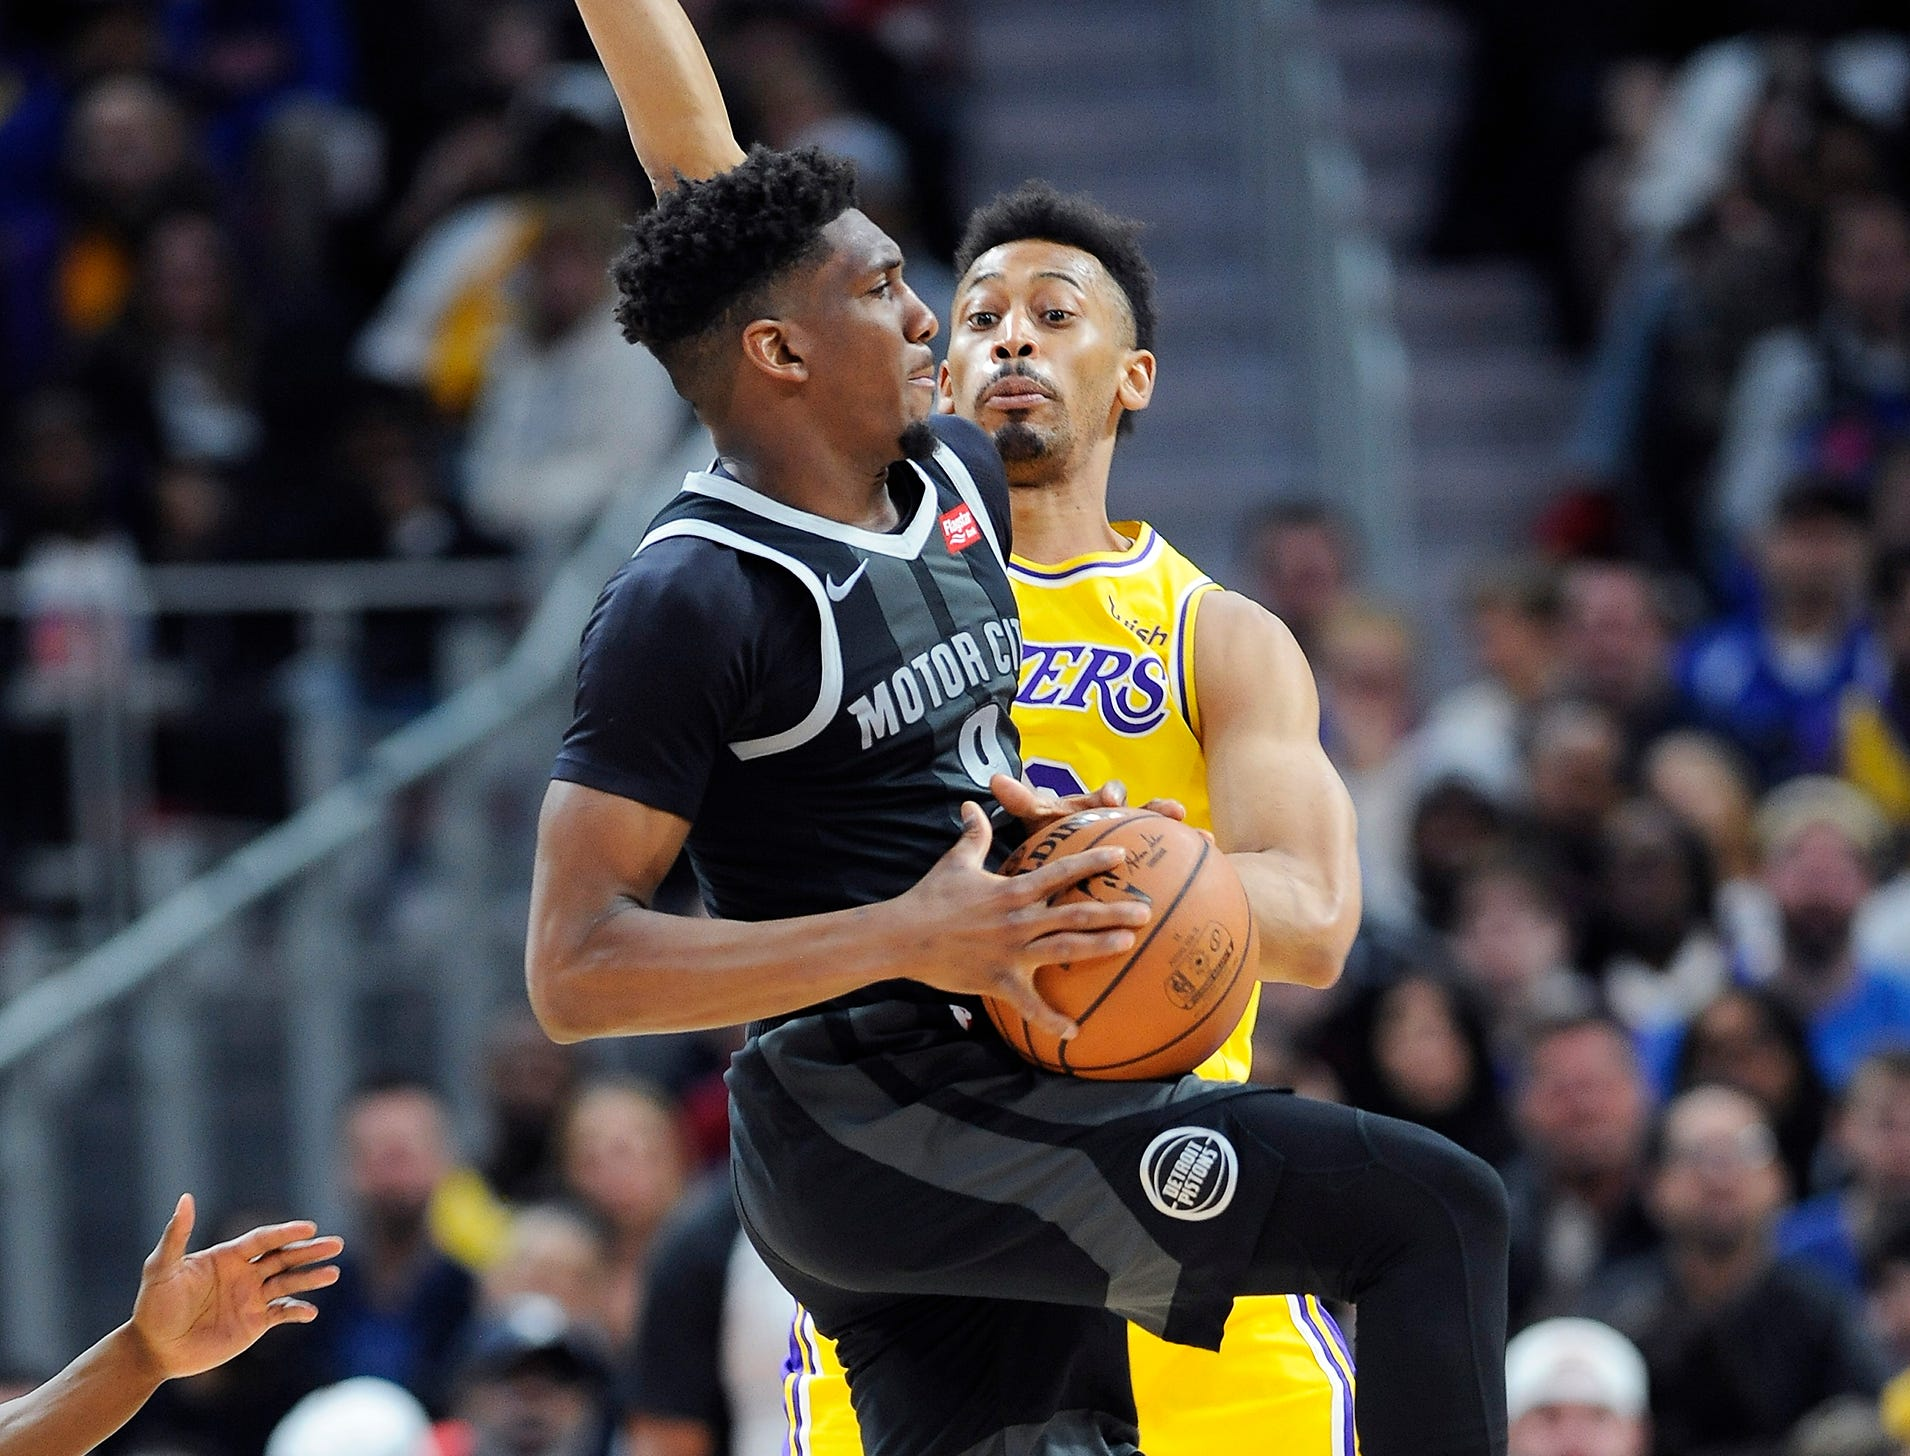 Pistons' Langston Galloway looks to make a pass over Lakers' Johnathan Williams in the fourth quarter.